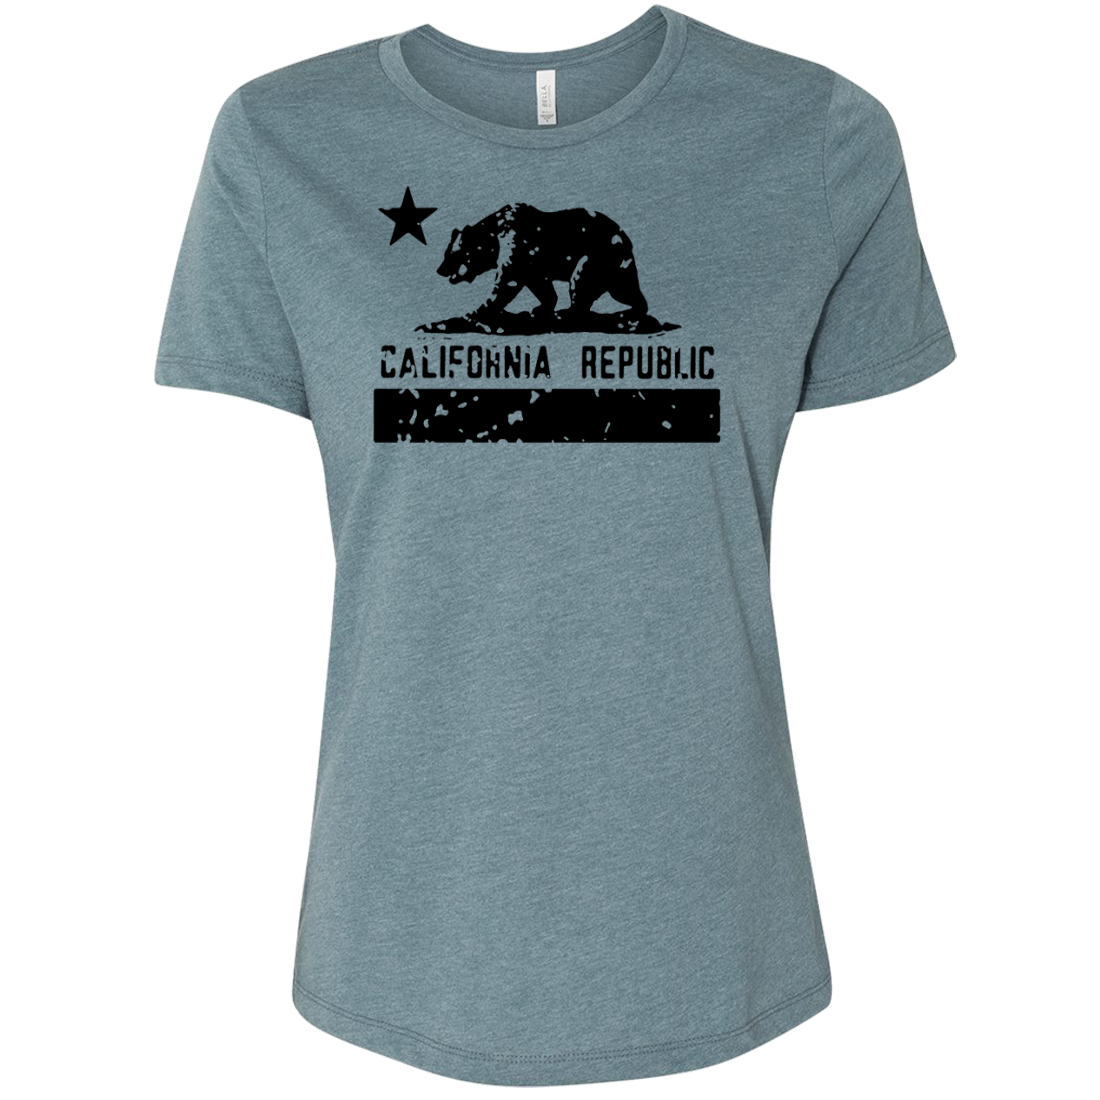 California Flag Black Print Silhouette Women's Relaxed Jersey Tee